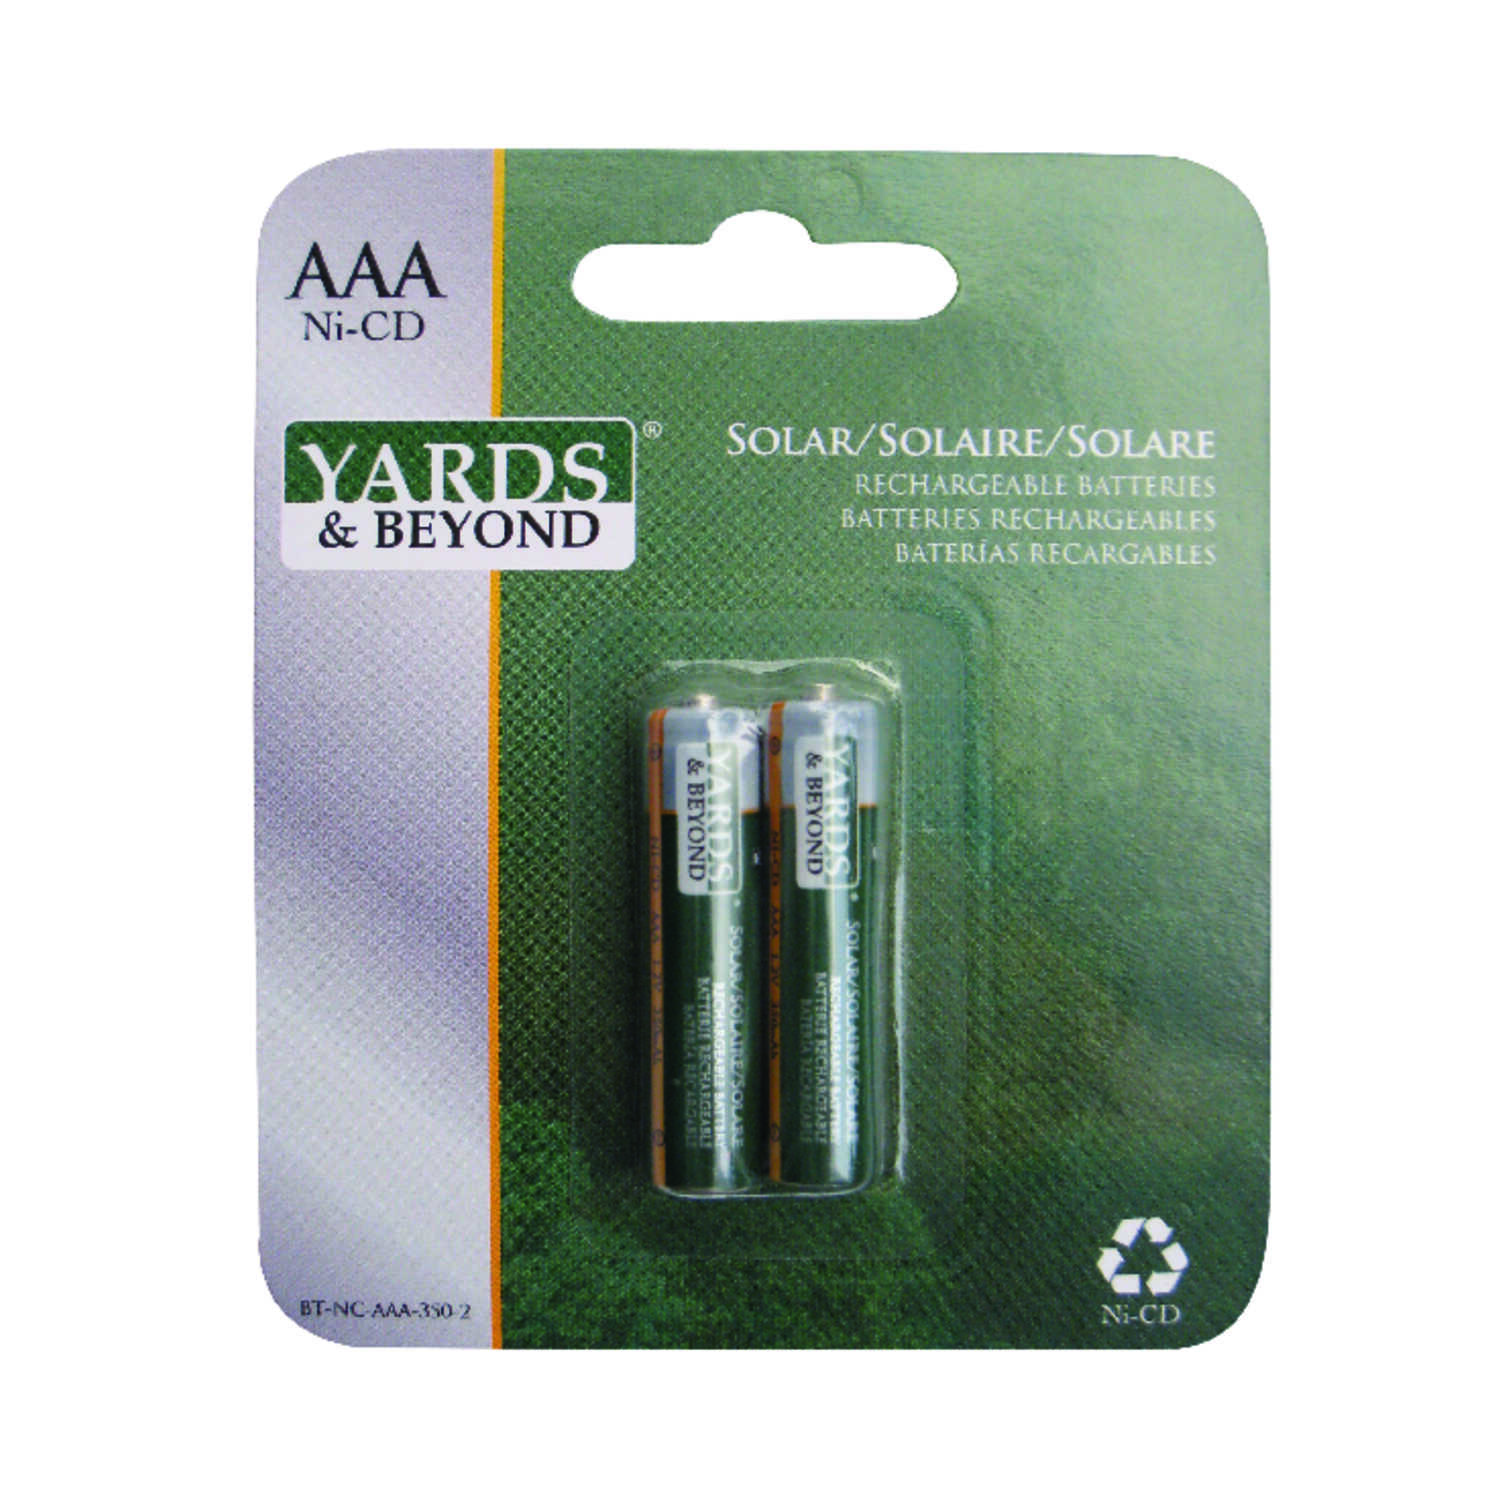 Yards & Beyond  Ni-Cad  AAA  1.2 volt Solar Rechargeable Battery  BTNCAAA350D2  2 pk